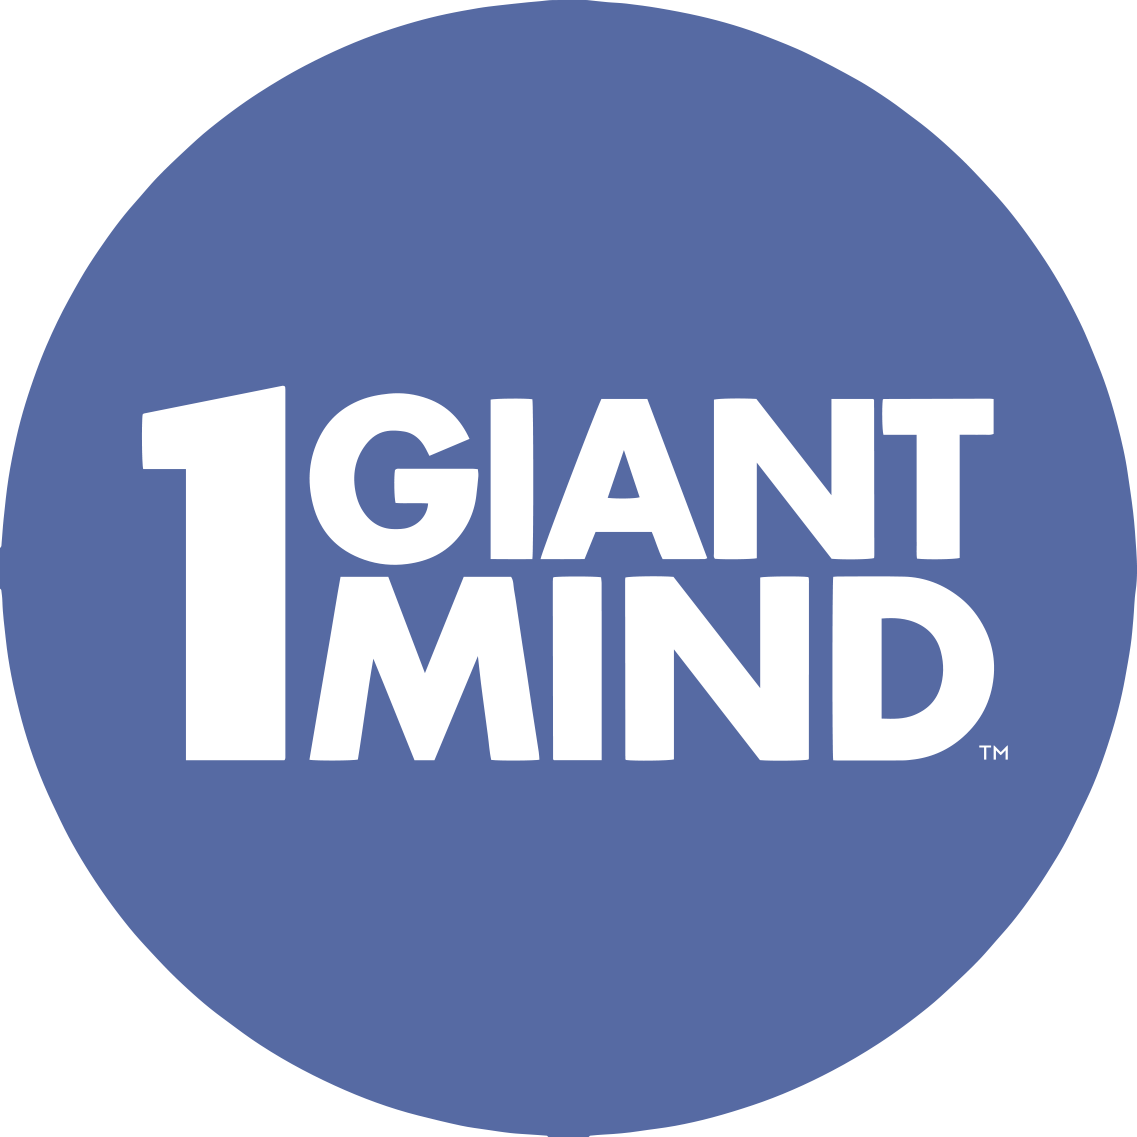 1GIANTMIND_denim.png